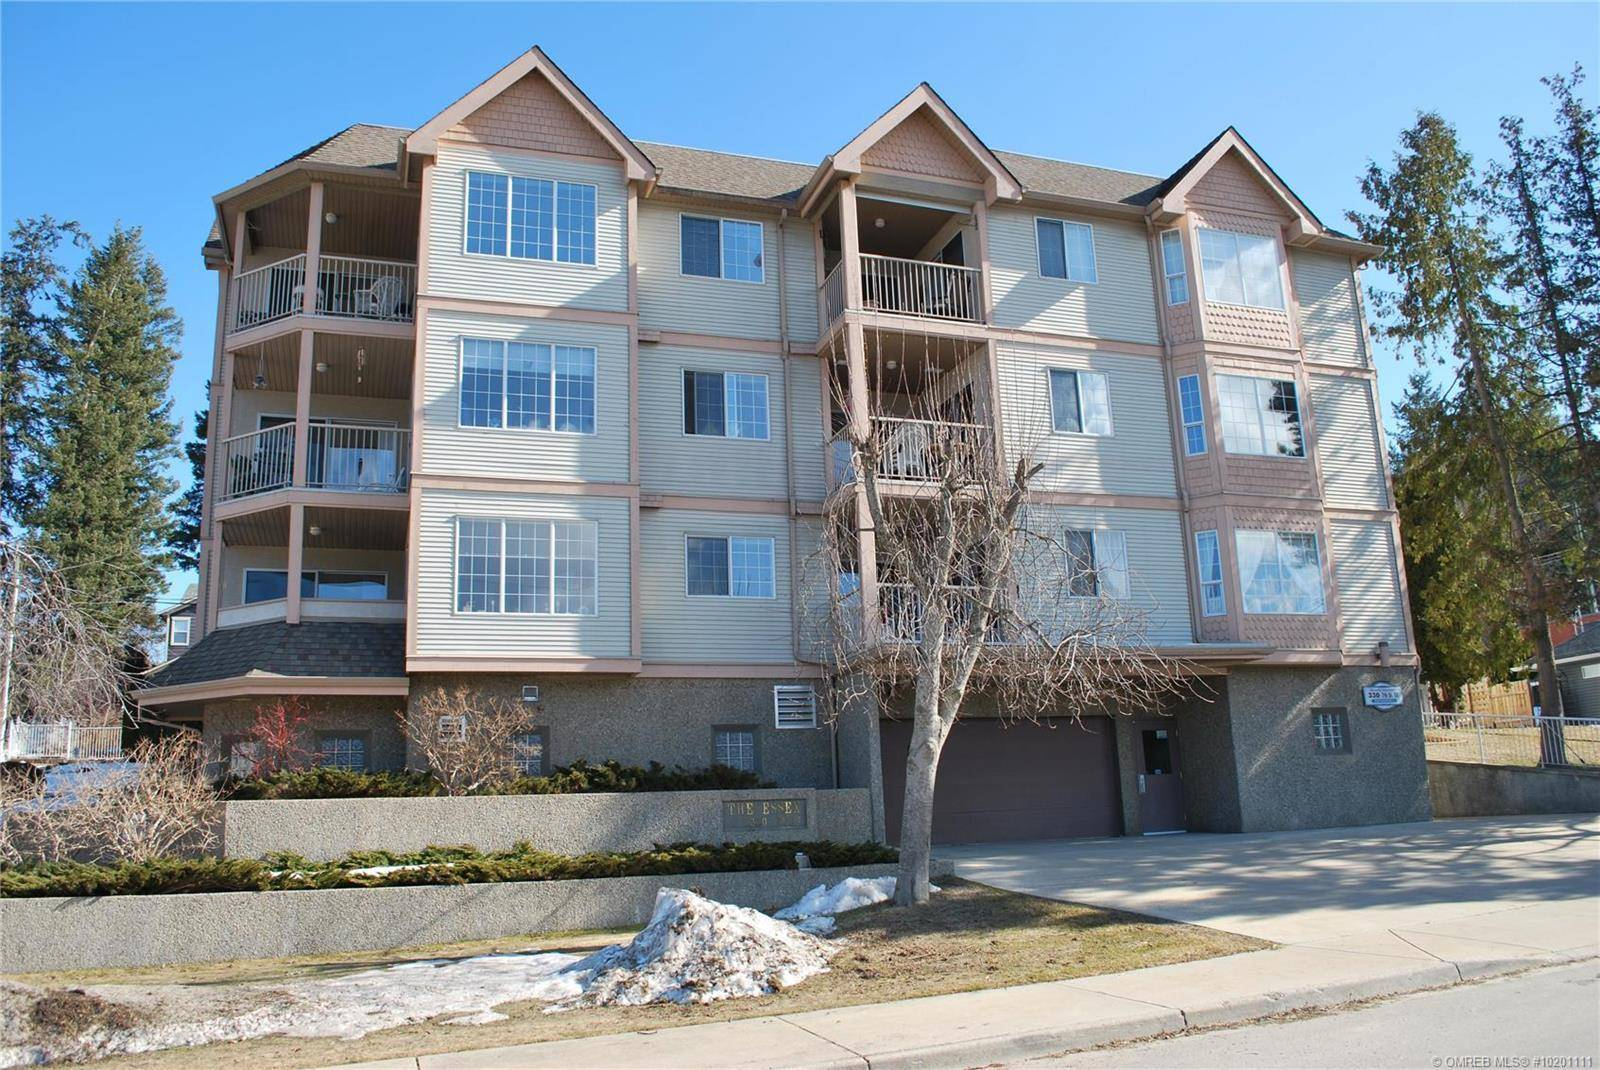 Condo for sale at 330 7 St Southeast Unit 102 Salmon Arm British Columbia - MLS: 10201111